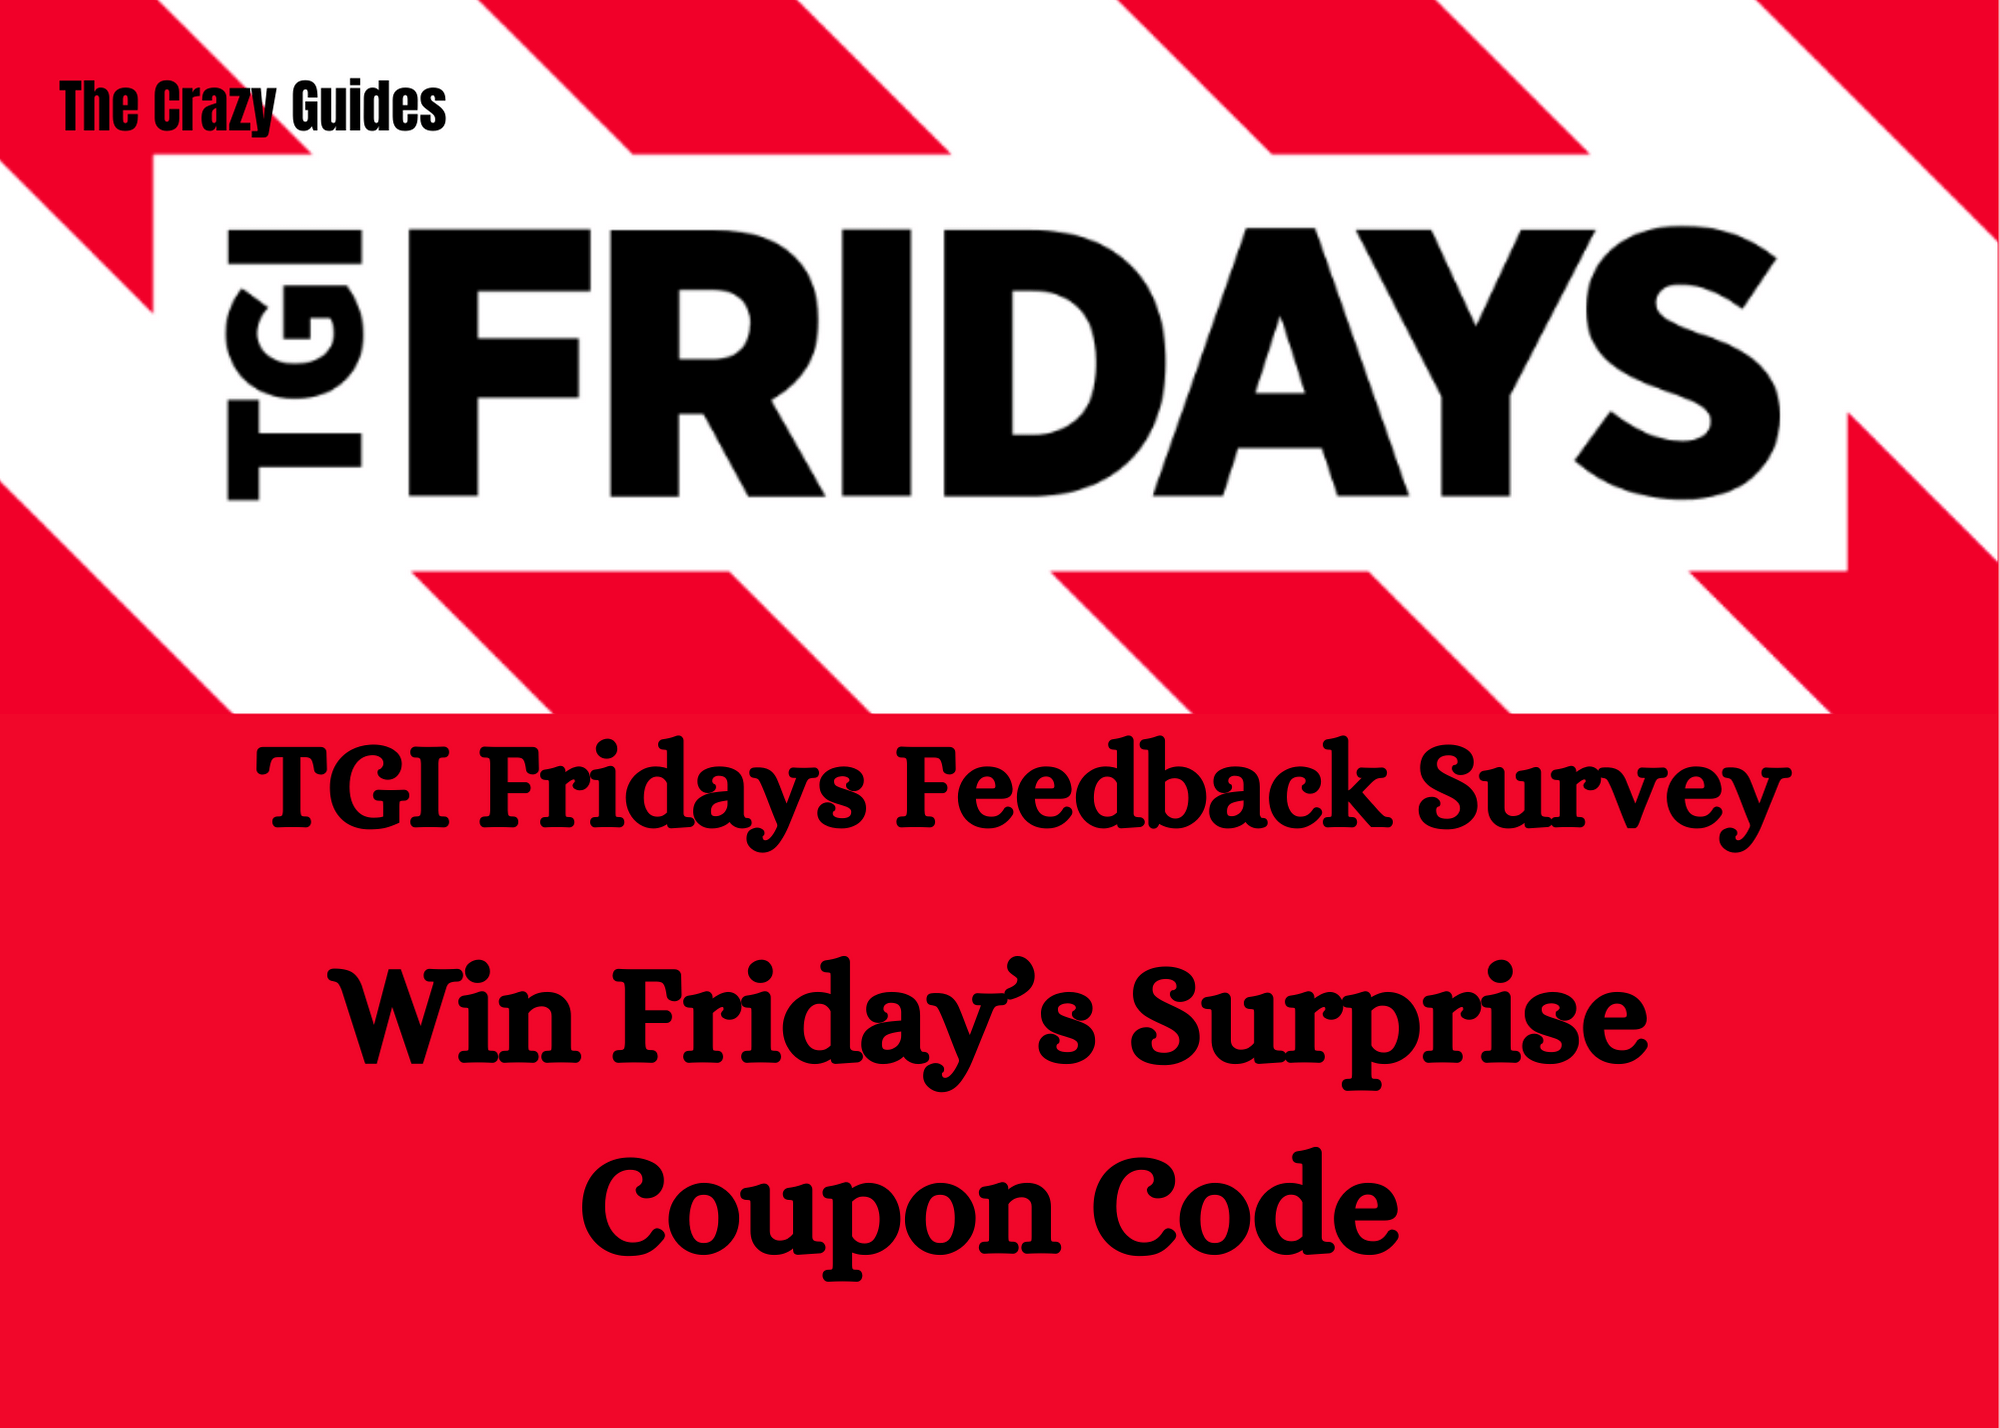 tgi fridays feedback survey